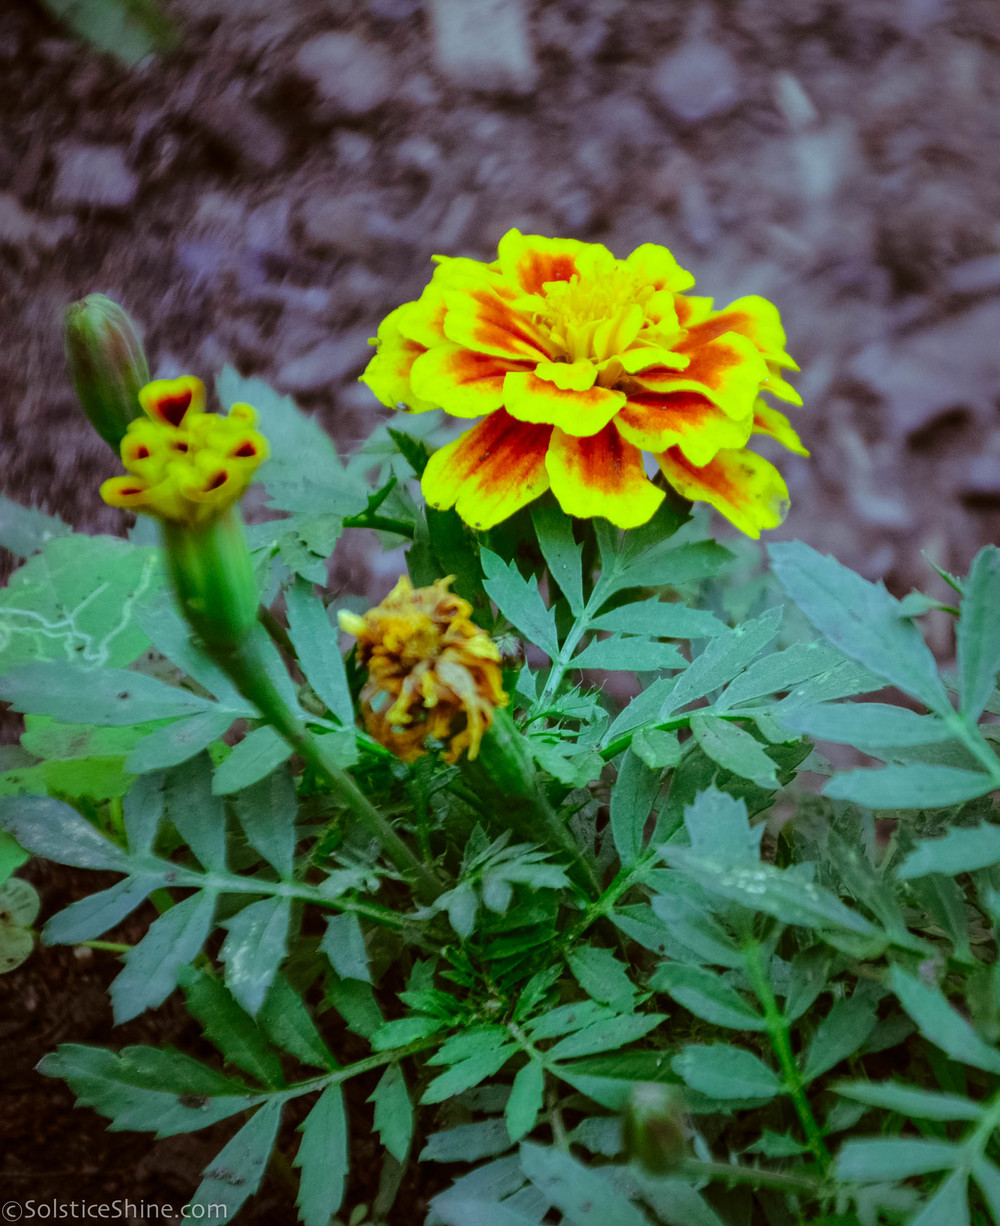 Marigold. Cultivation from seeds, from seedlings, useful properties of marigolds